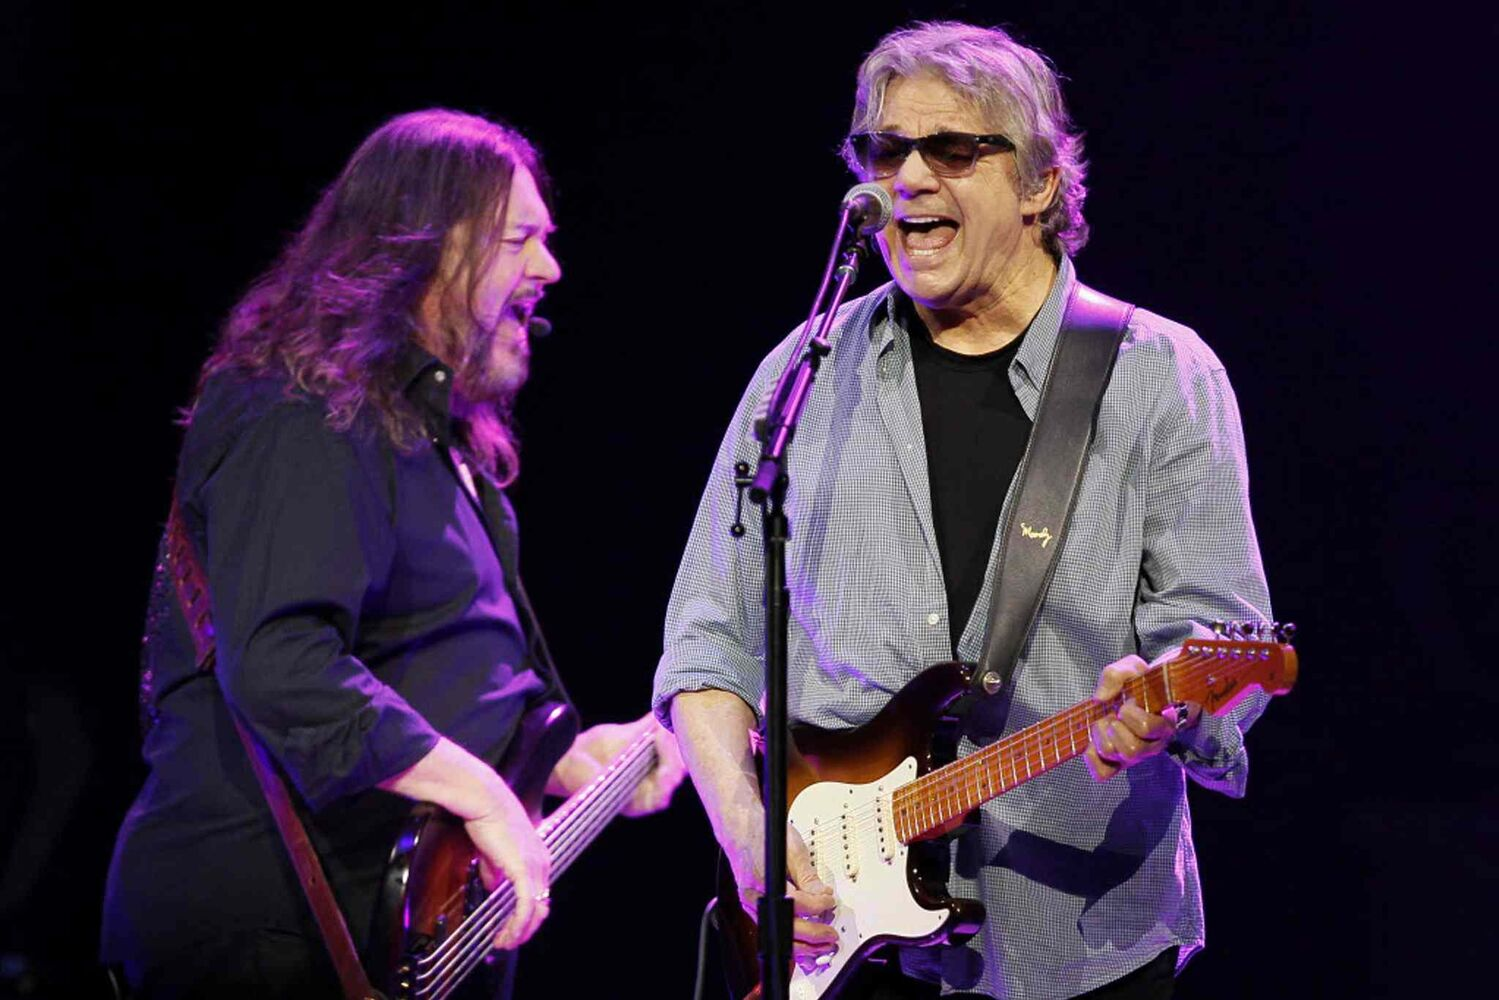 Steve and Kenny belt it out to an enthusiastic crowd.  (Winnipeg Free Press)